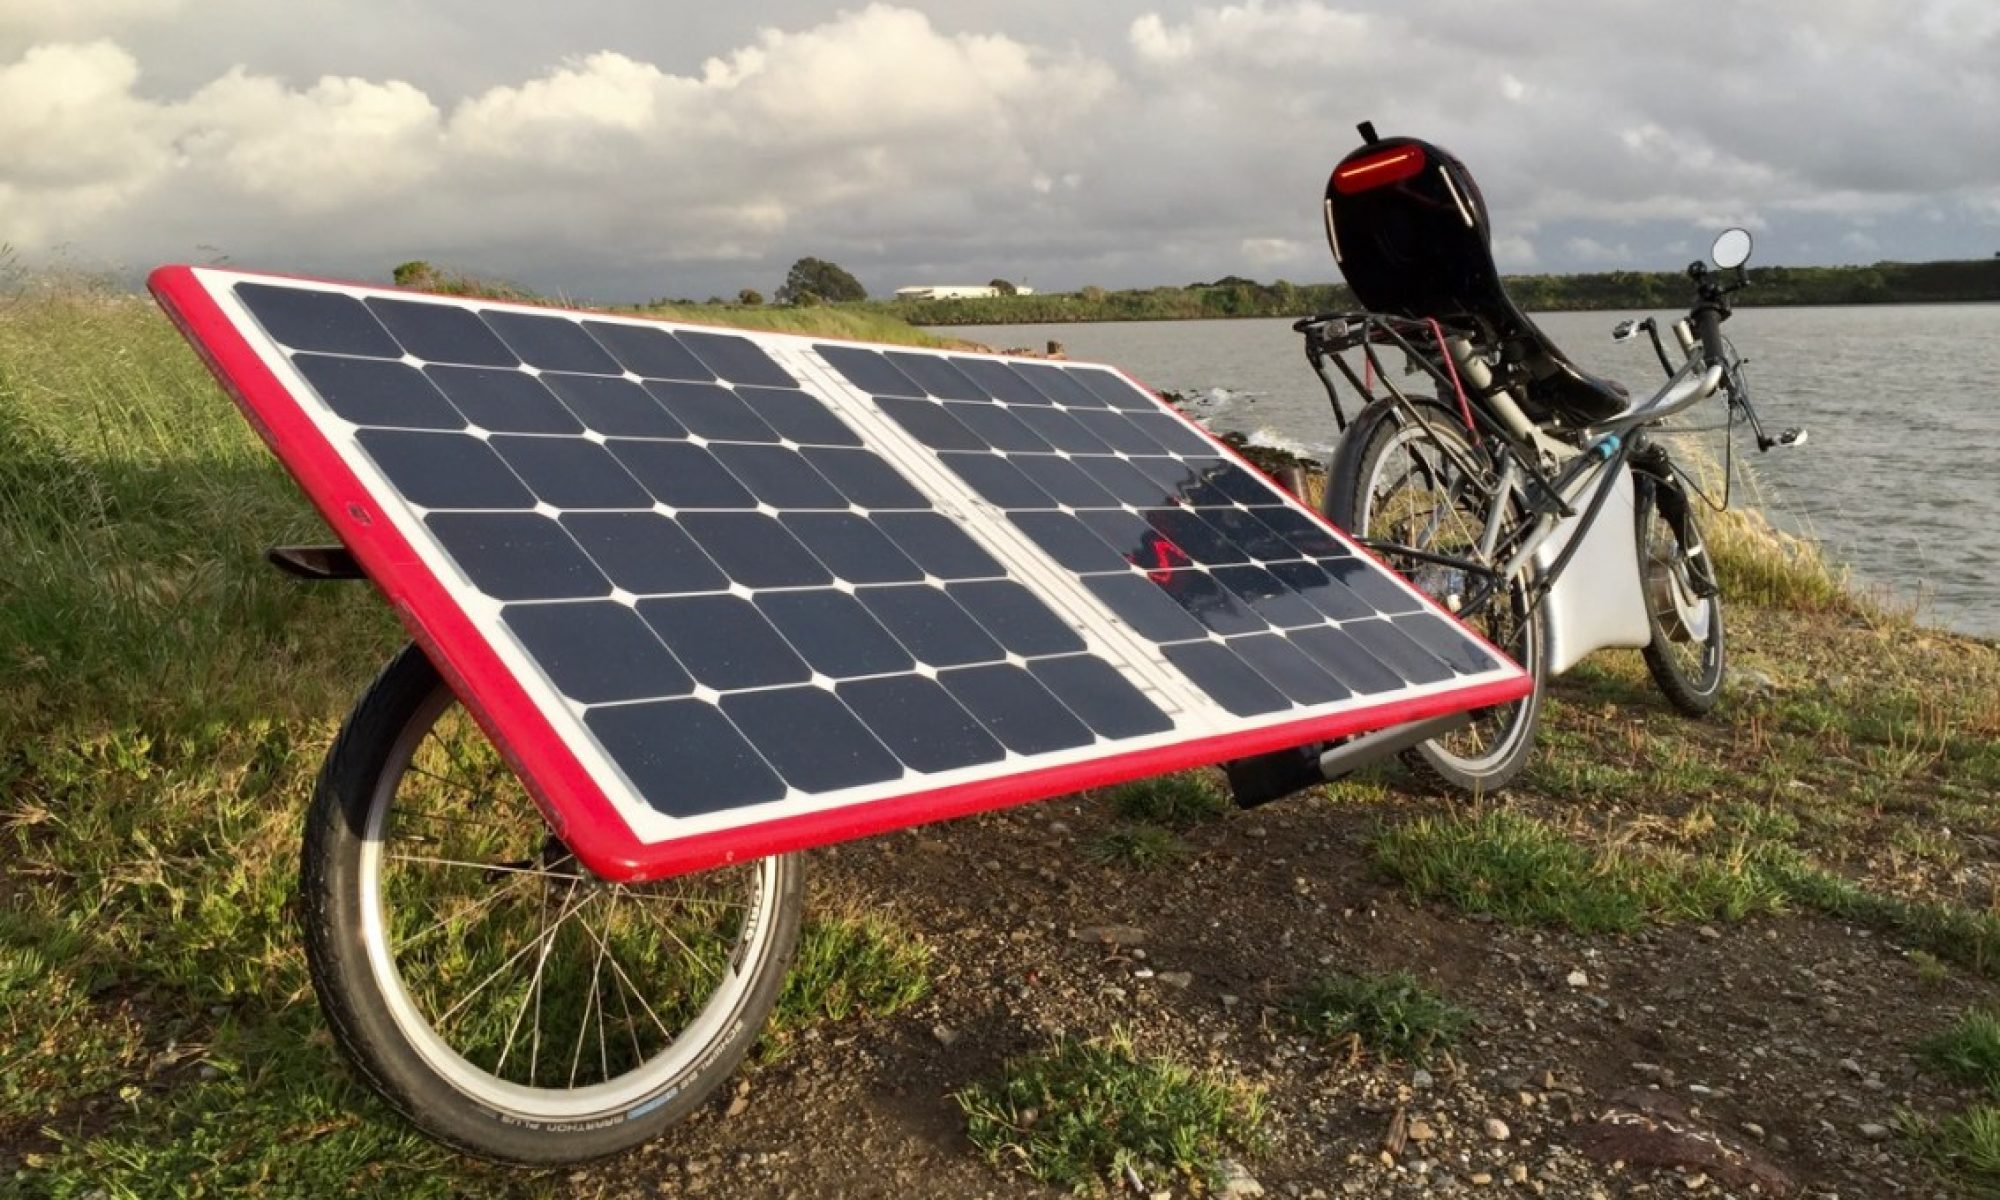 Yup. It's a solar powered ebike.